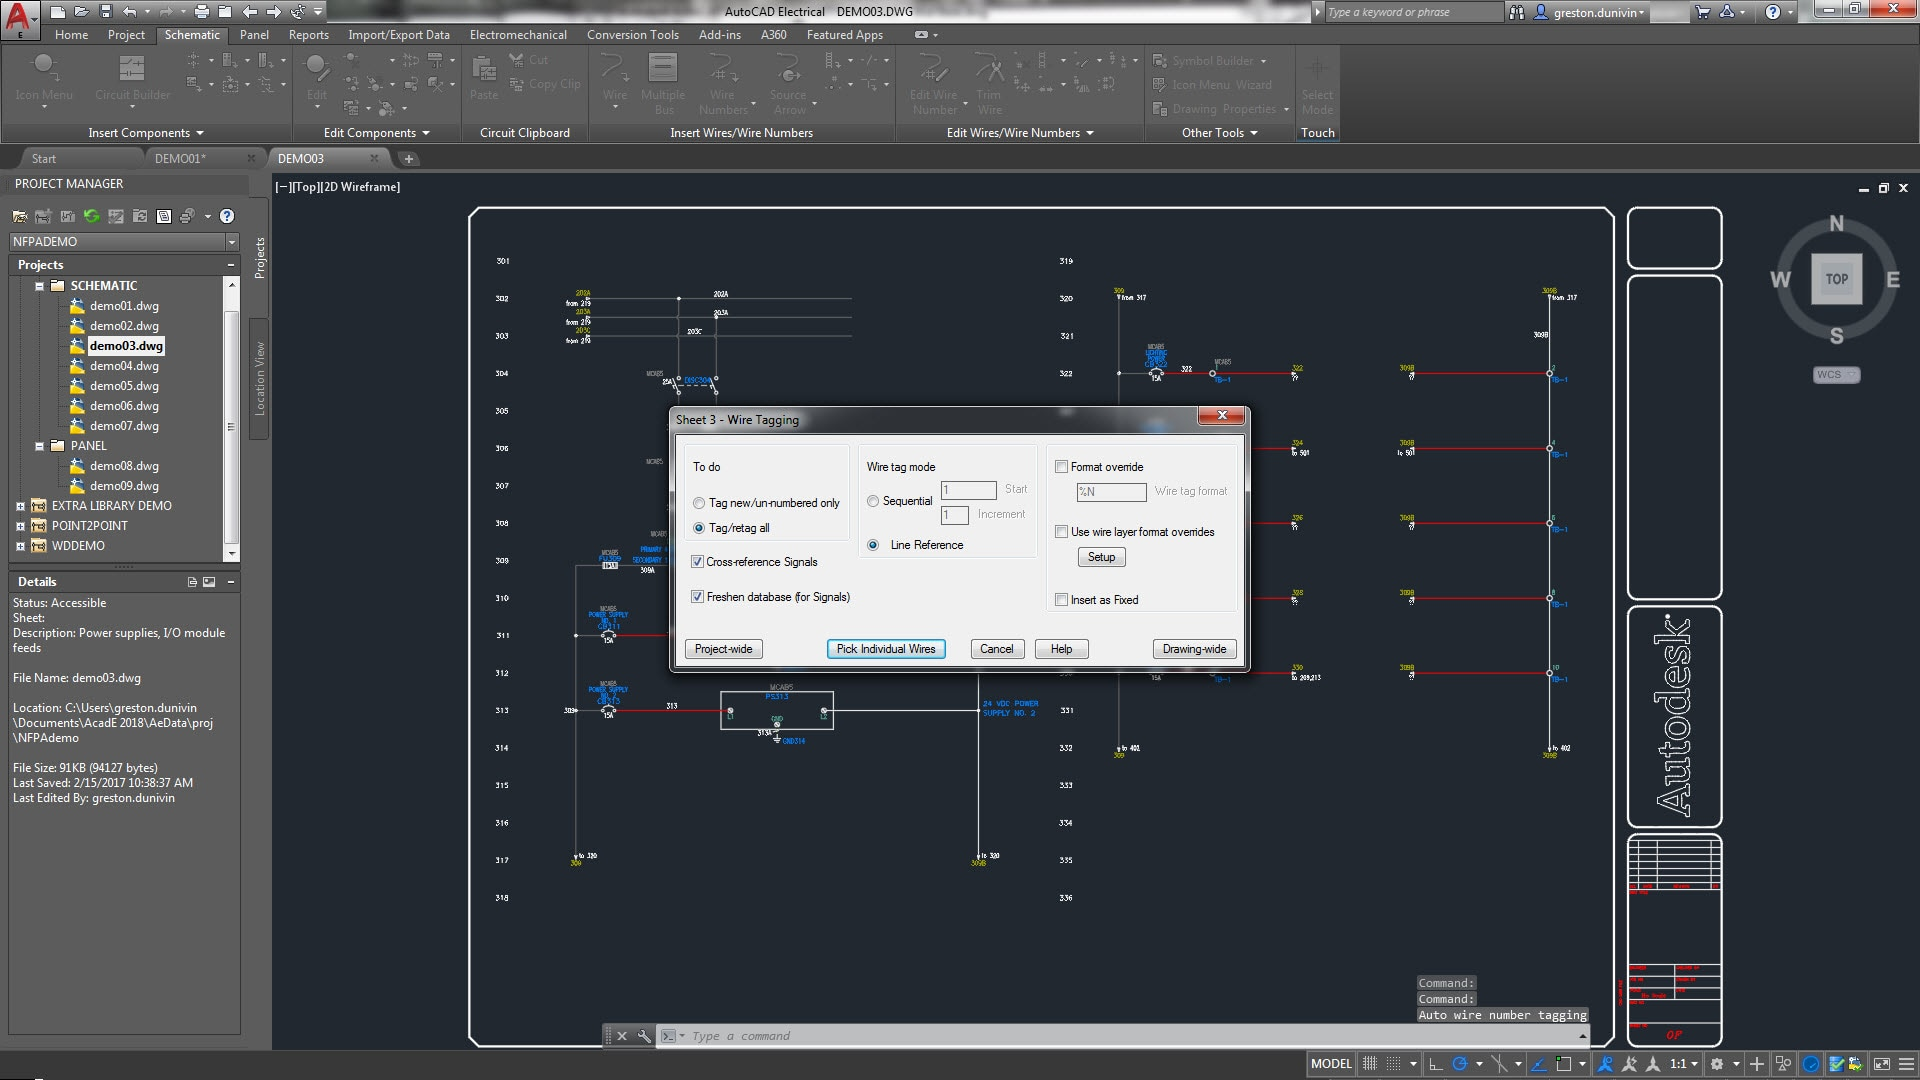 Autocad Electrical Toolset Design Software Single Line Diagram Symbols 9 Control Schematic